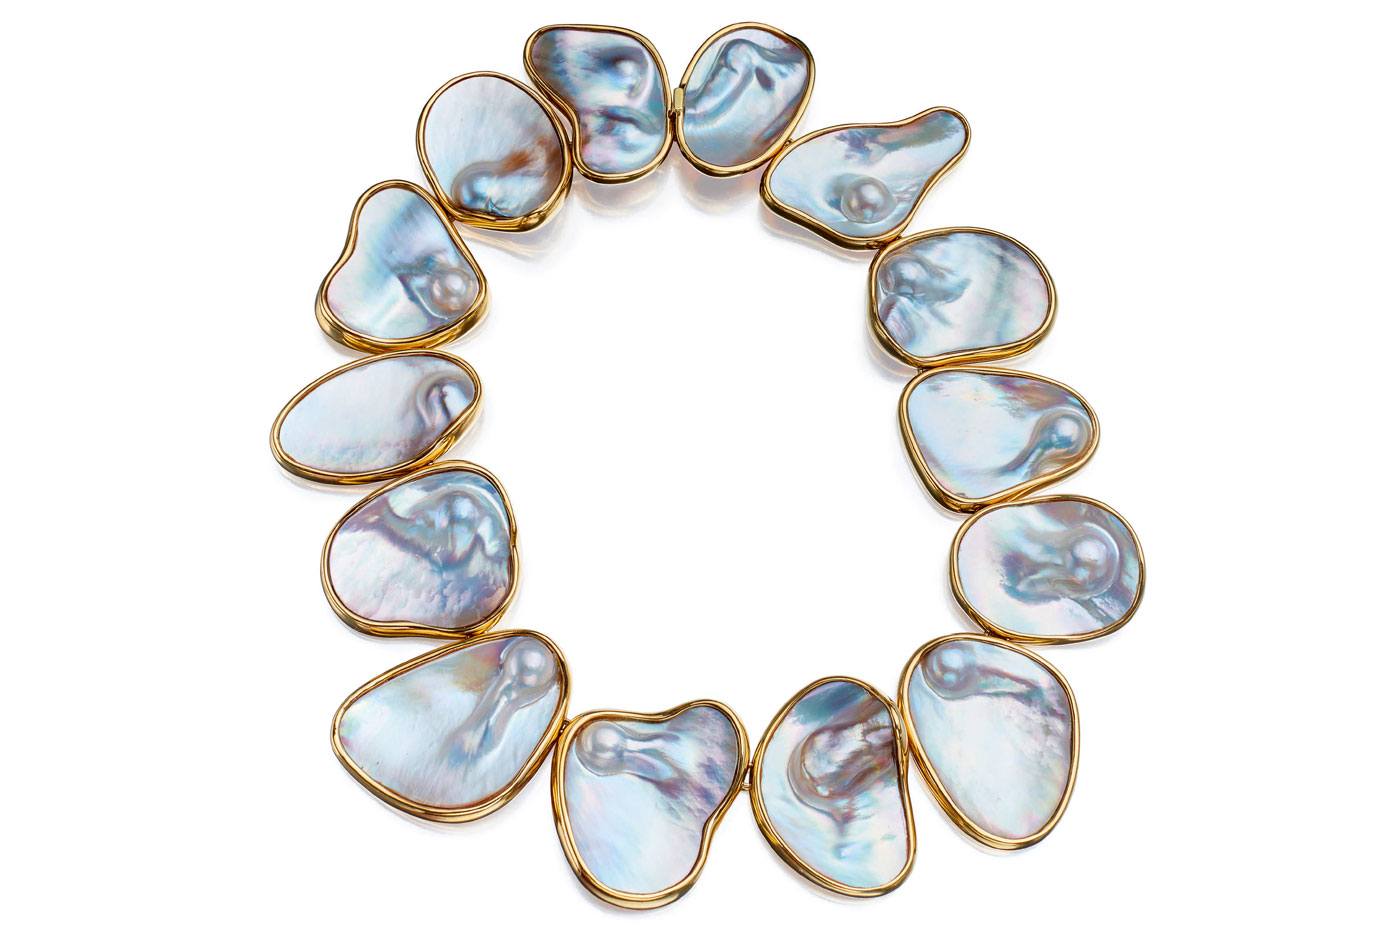 Tony Duquette Mabe pearl necklace